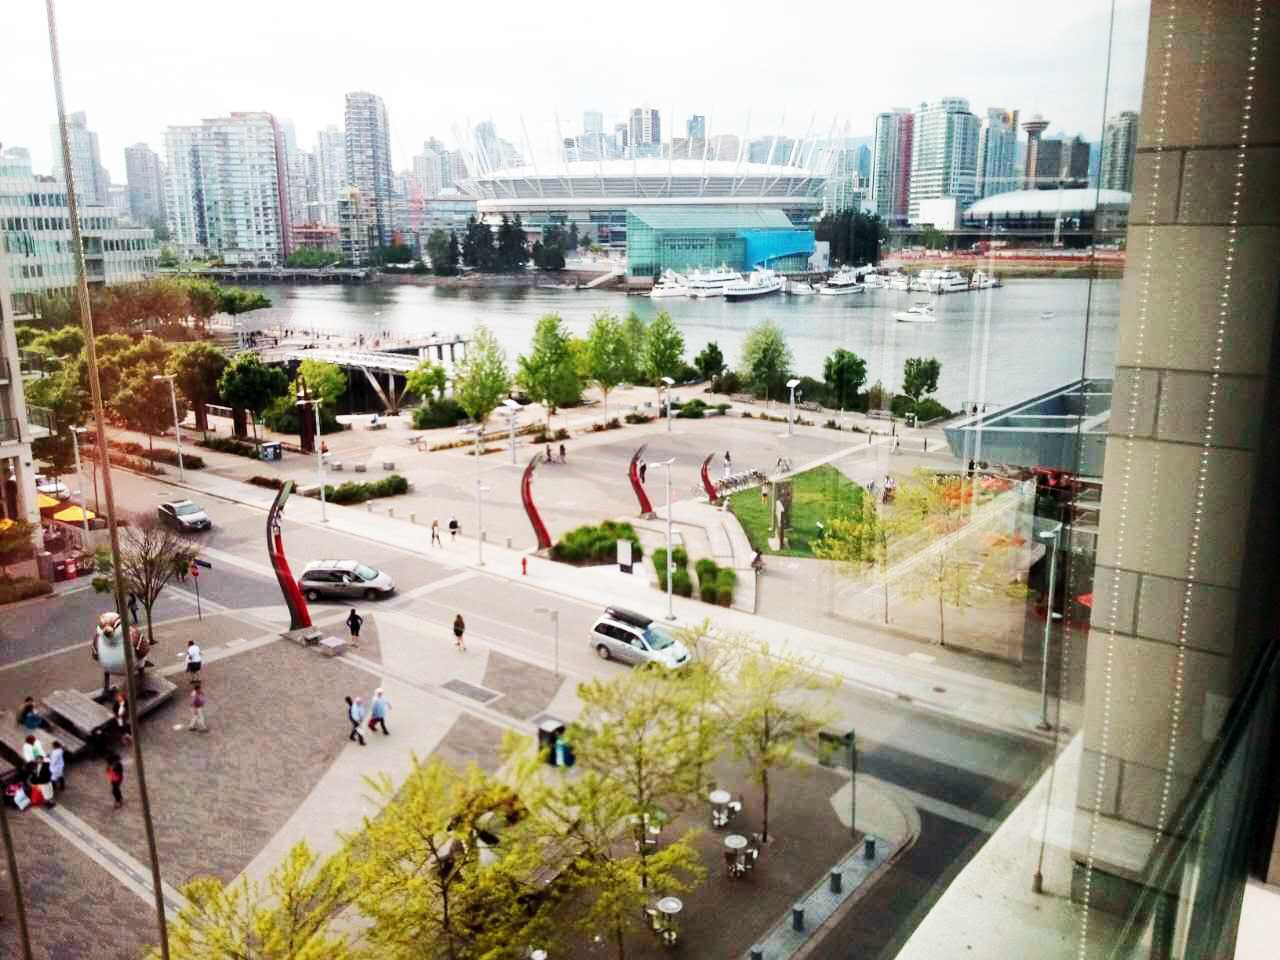 Main Photo: 604 77 WALTER HARDWICK AVENUE in : False Creek Condo for sale : MLS®# R2029779